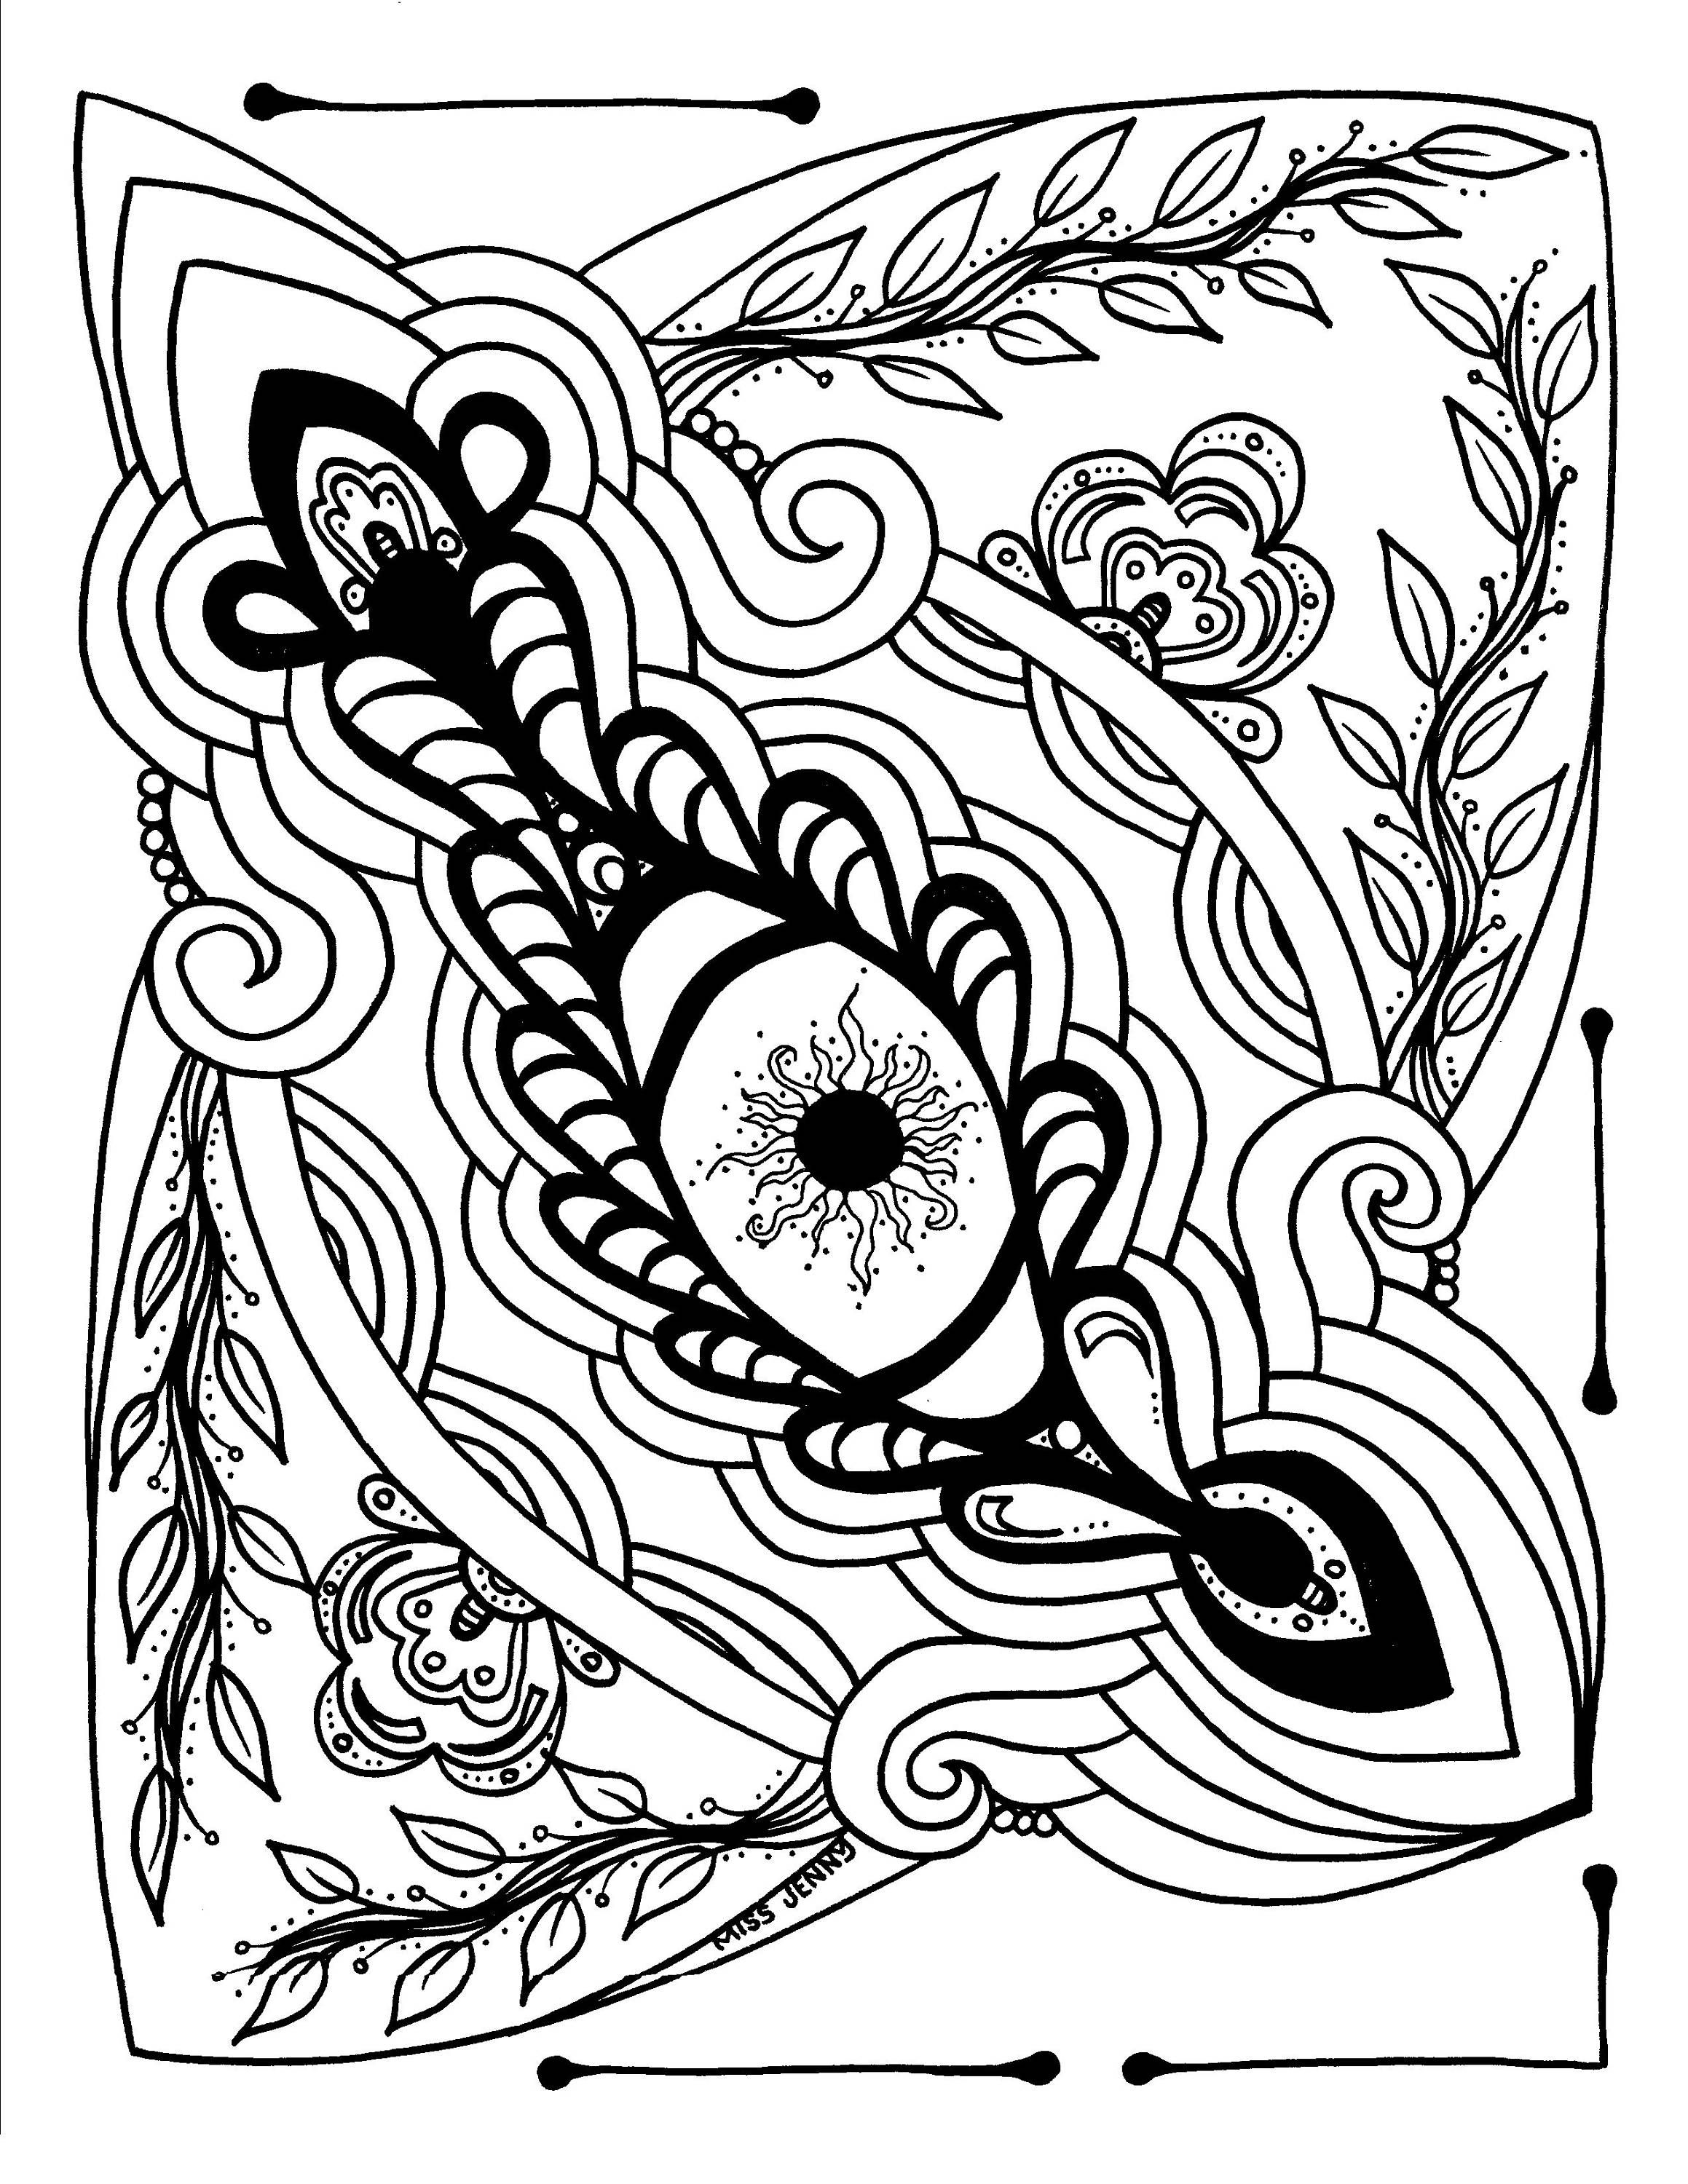 Eye Love Art Therapeutic Coloring Page Or Tattoo By MissJennyDesignsUS On Etsy